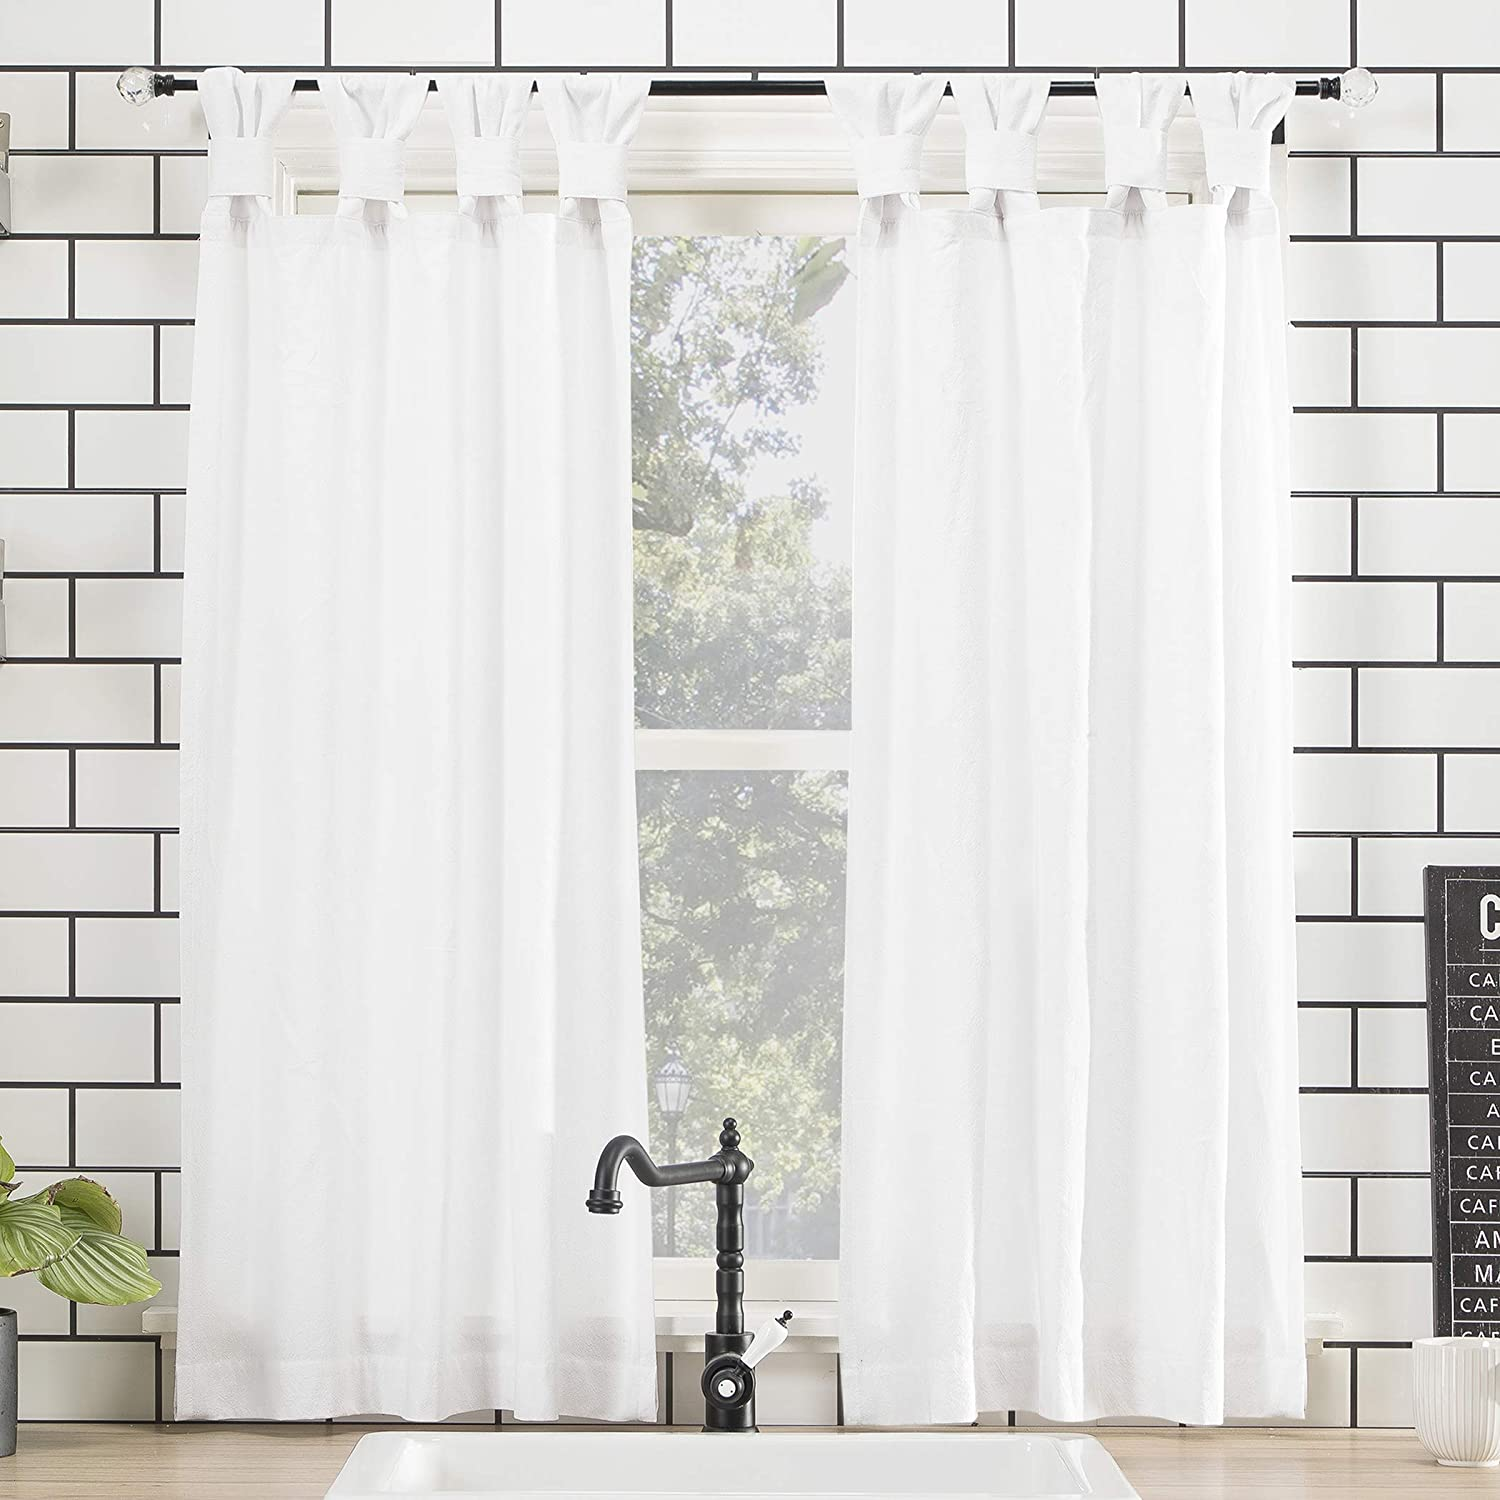 archaeo washed 100 cotton twist tab curtain 52 x 45 white